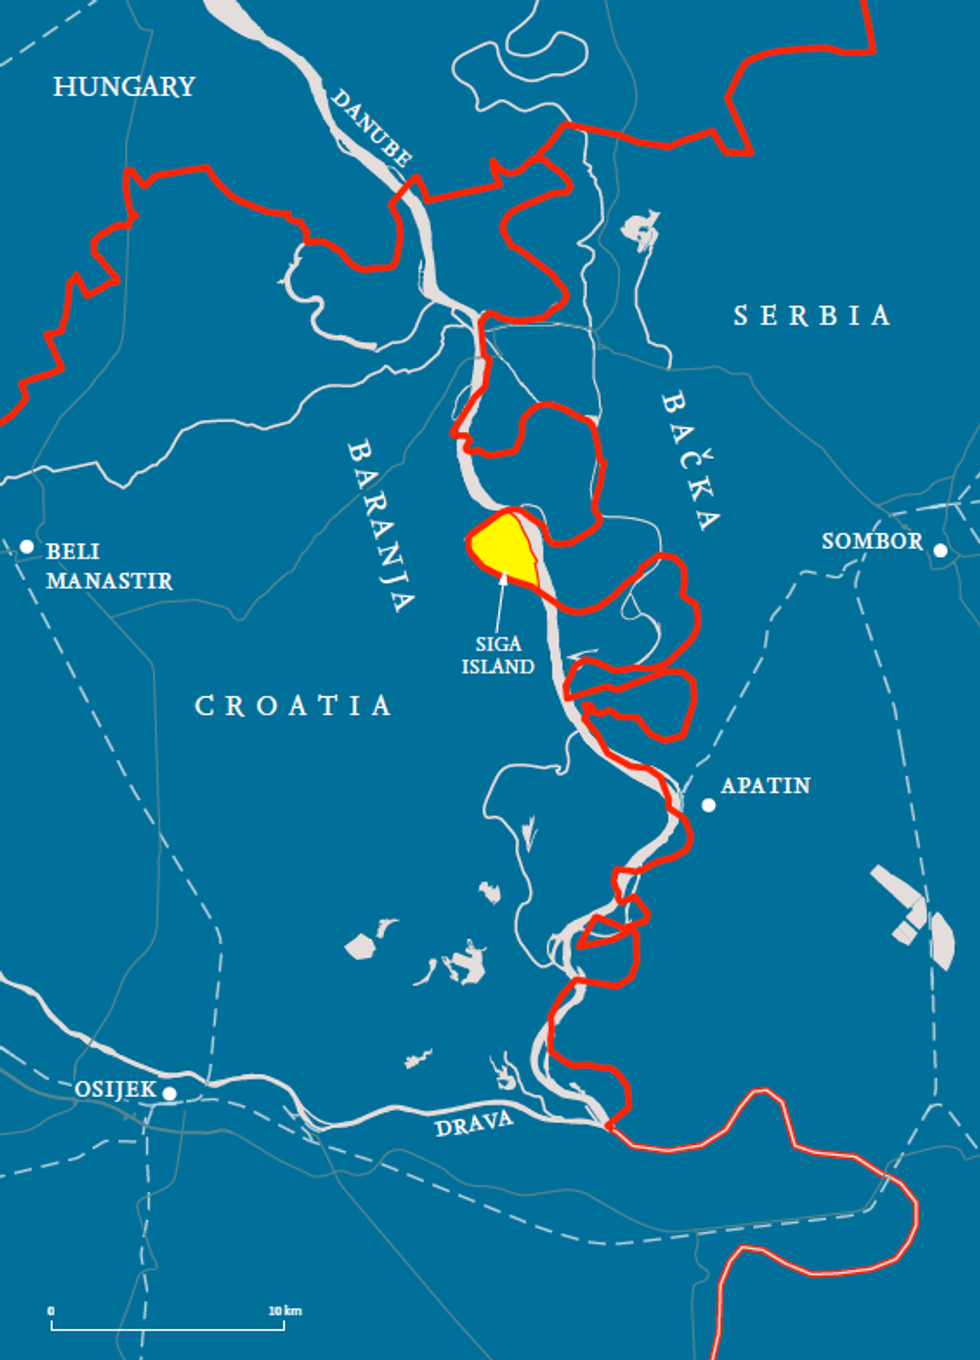 In a region fought over so bitterly, Siga Island presents a remarkable exception: it is claimed by neither Croatia nor Serbia.